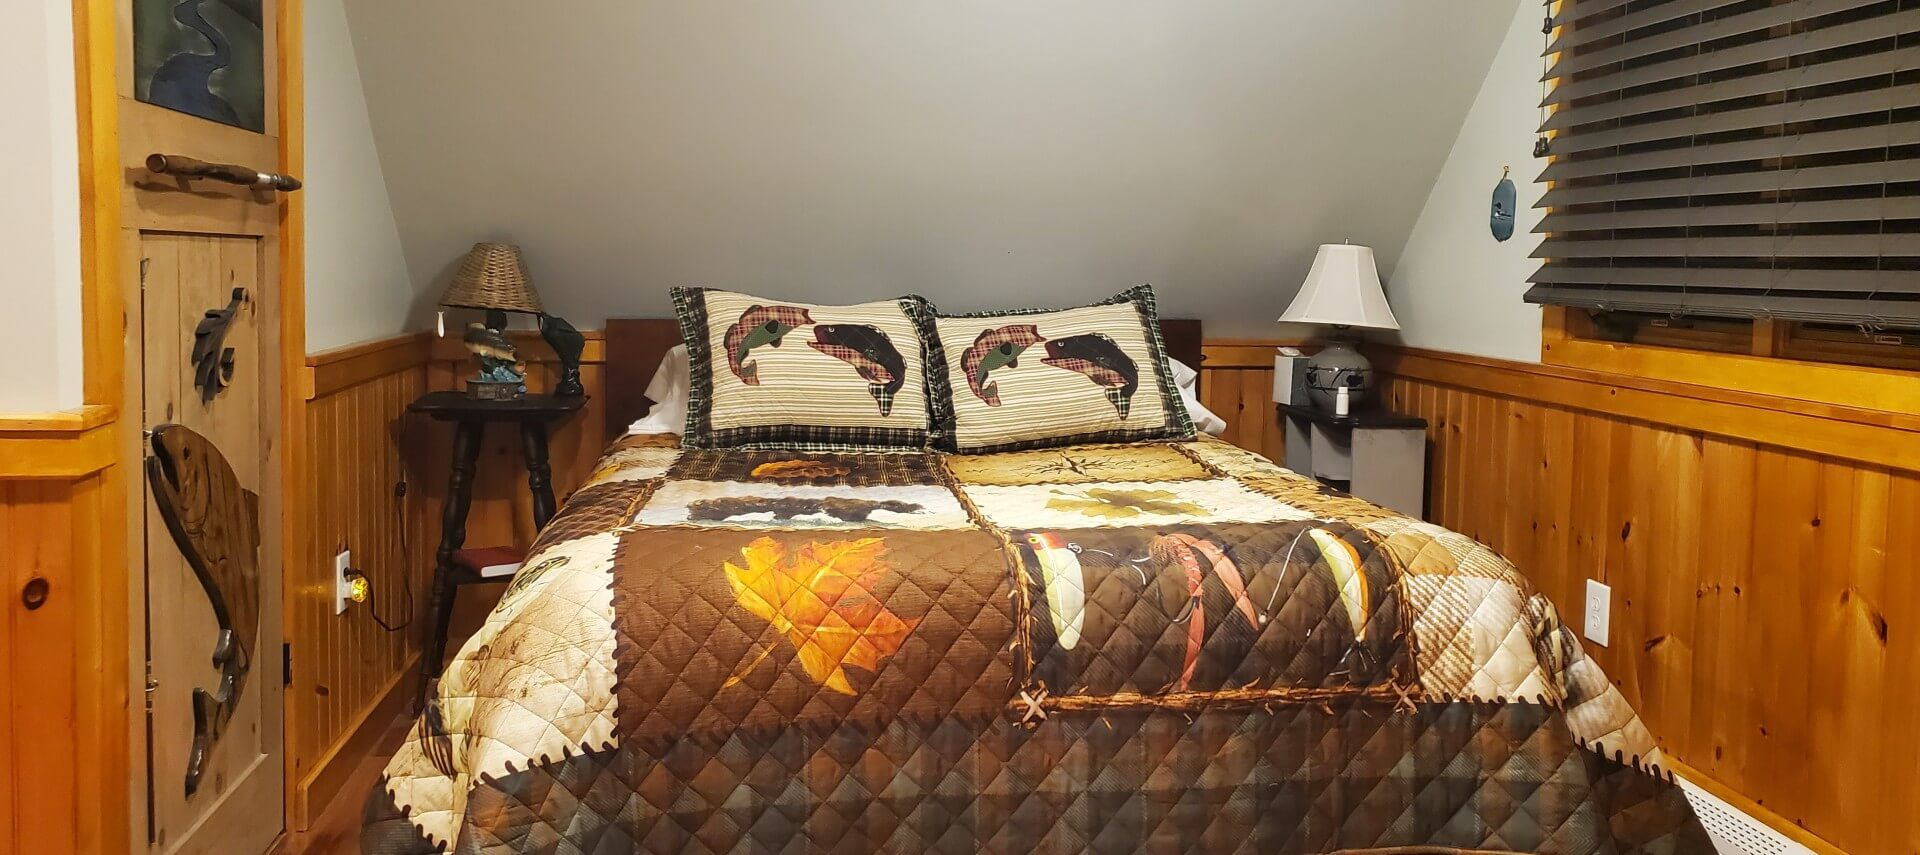 Queen bed with quilt adorned with bears, fish, and maple leaves. A wooden door carved with a fish and river scene is next to the bed.